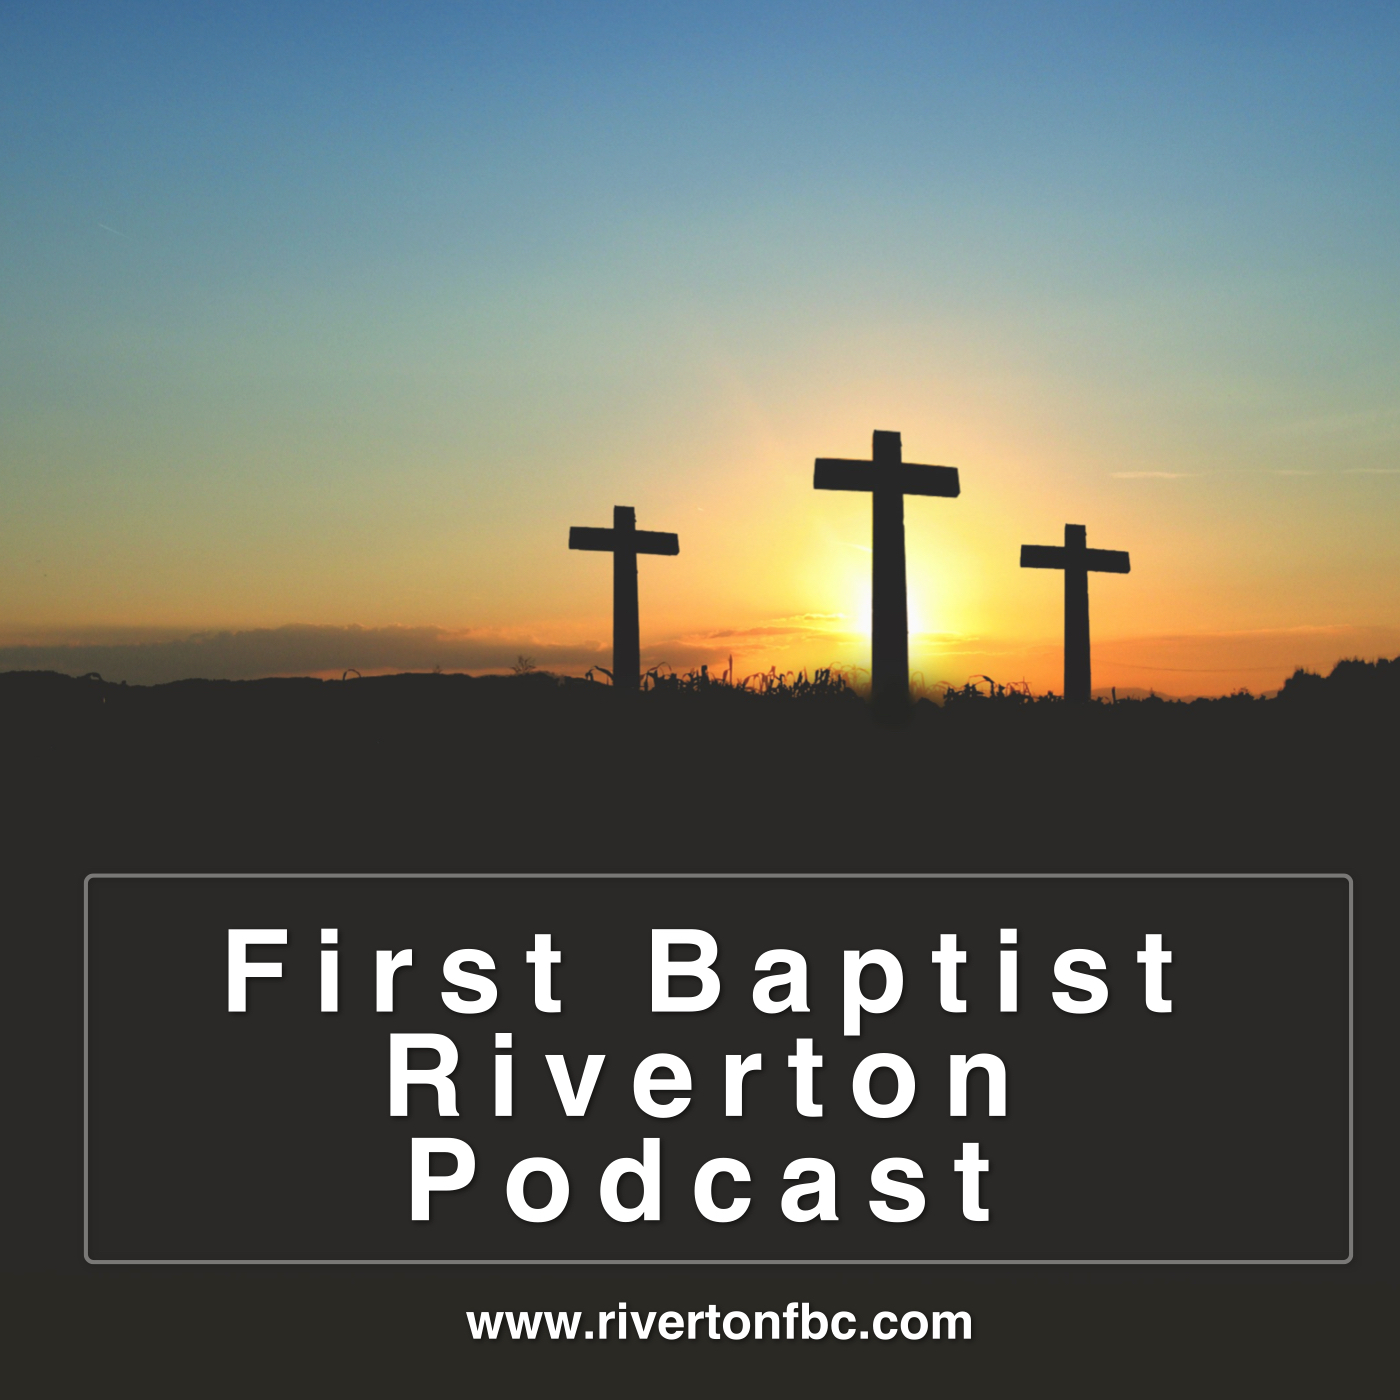 FBCR Podcast EP73 - Sunday Morning Message from Bro. Michael Pearce